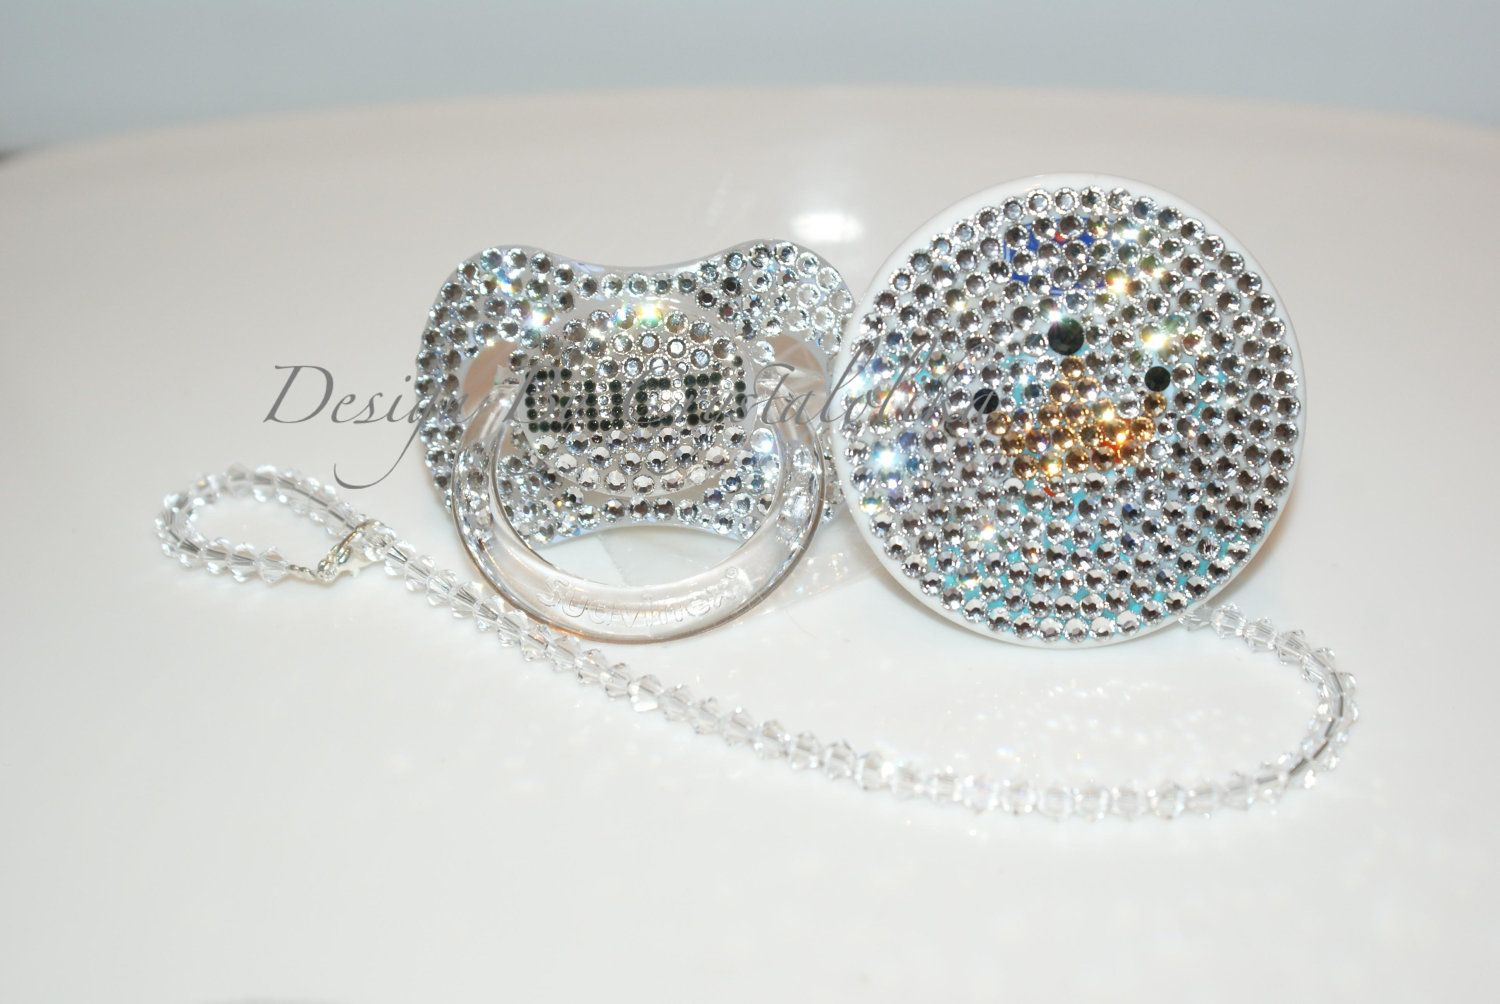 f2e1a956dab07 Baby Bling Pacifier Gucci made with Swarovski Crystal (Avent Philips) By  Crystalolika.  40.00